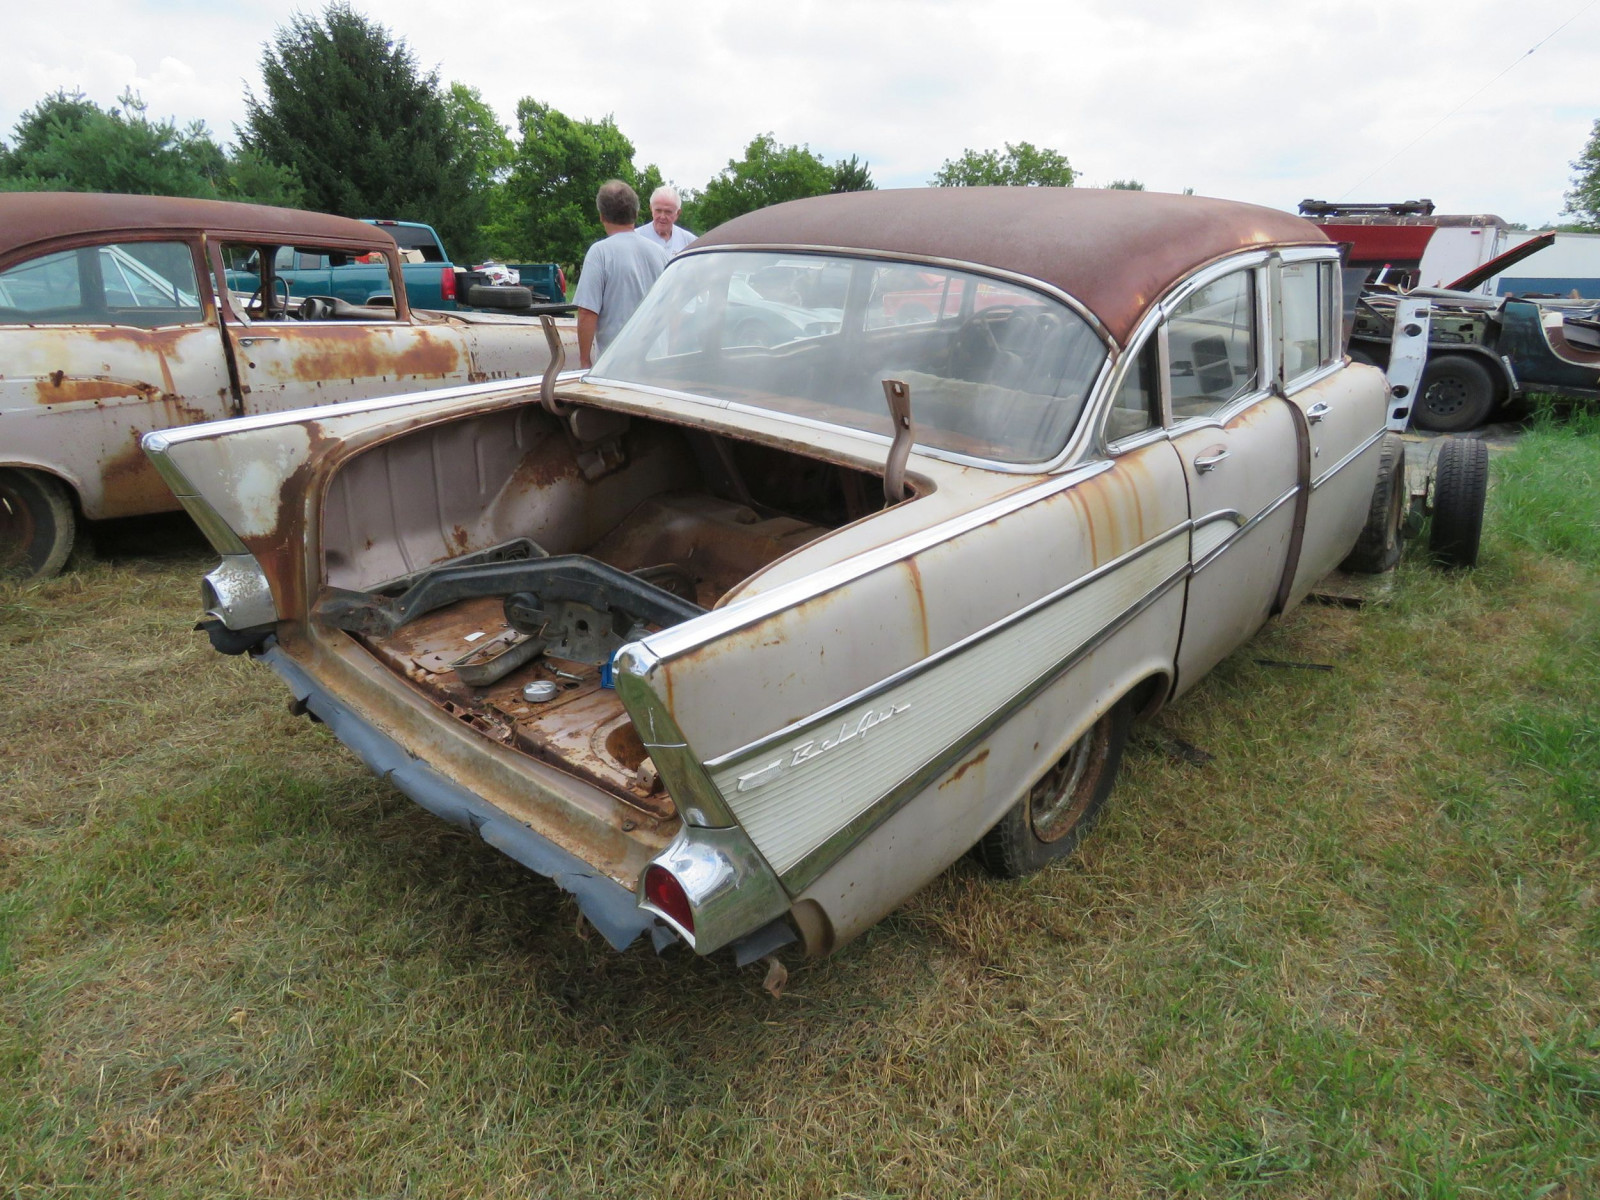 1957 Chevrolet 4dr Sedan for Rod or Restore - Image 4